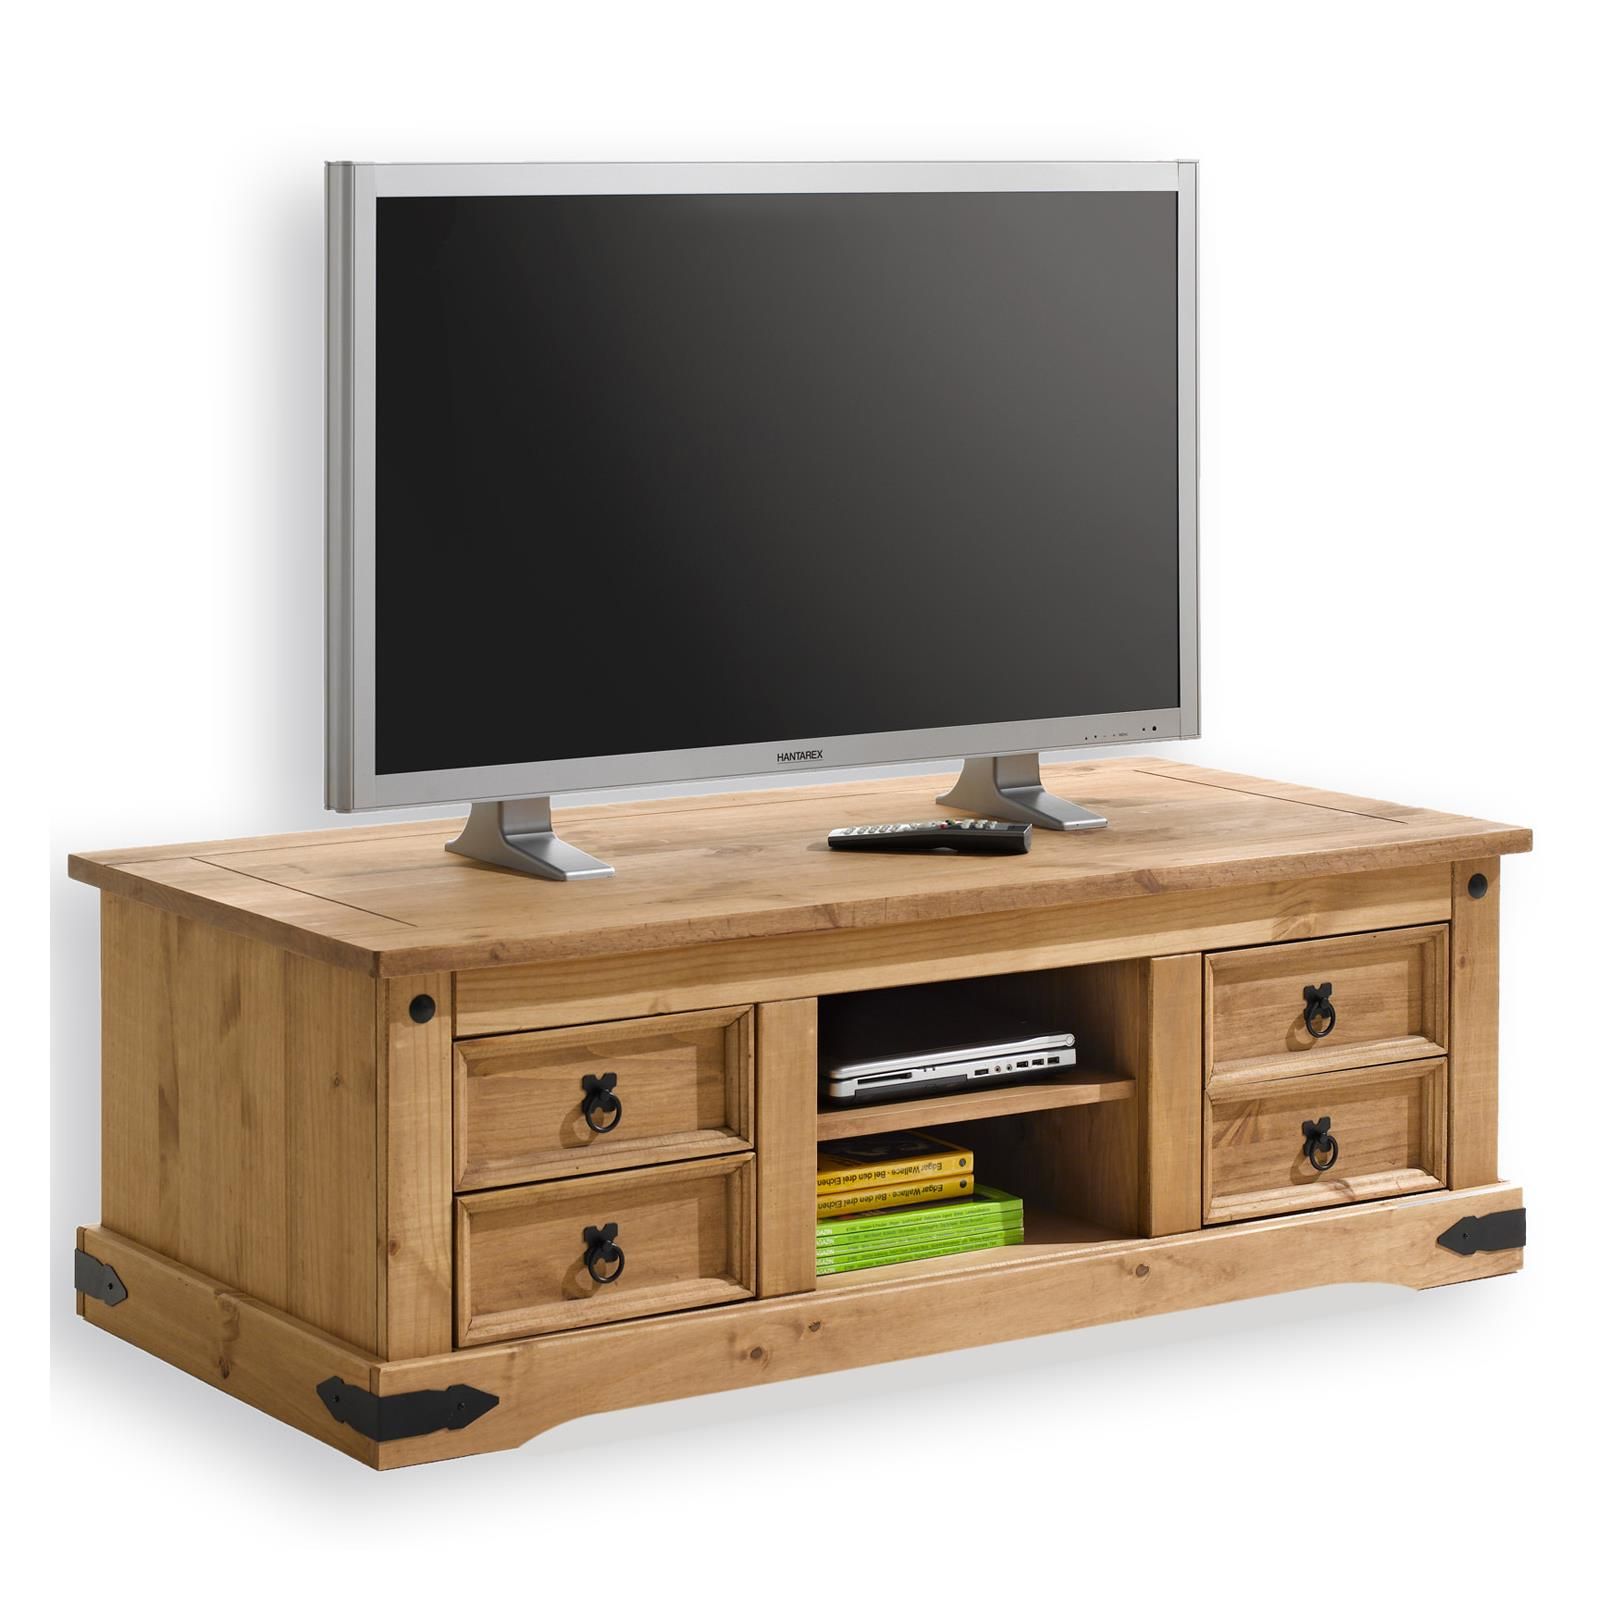 meuble tv en pin tequila style mexicain finition cir e mobil meubles. Black Bedroom Furniture Sets. Home Design Ideas